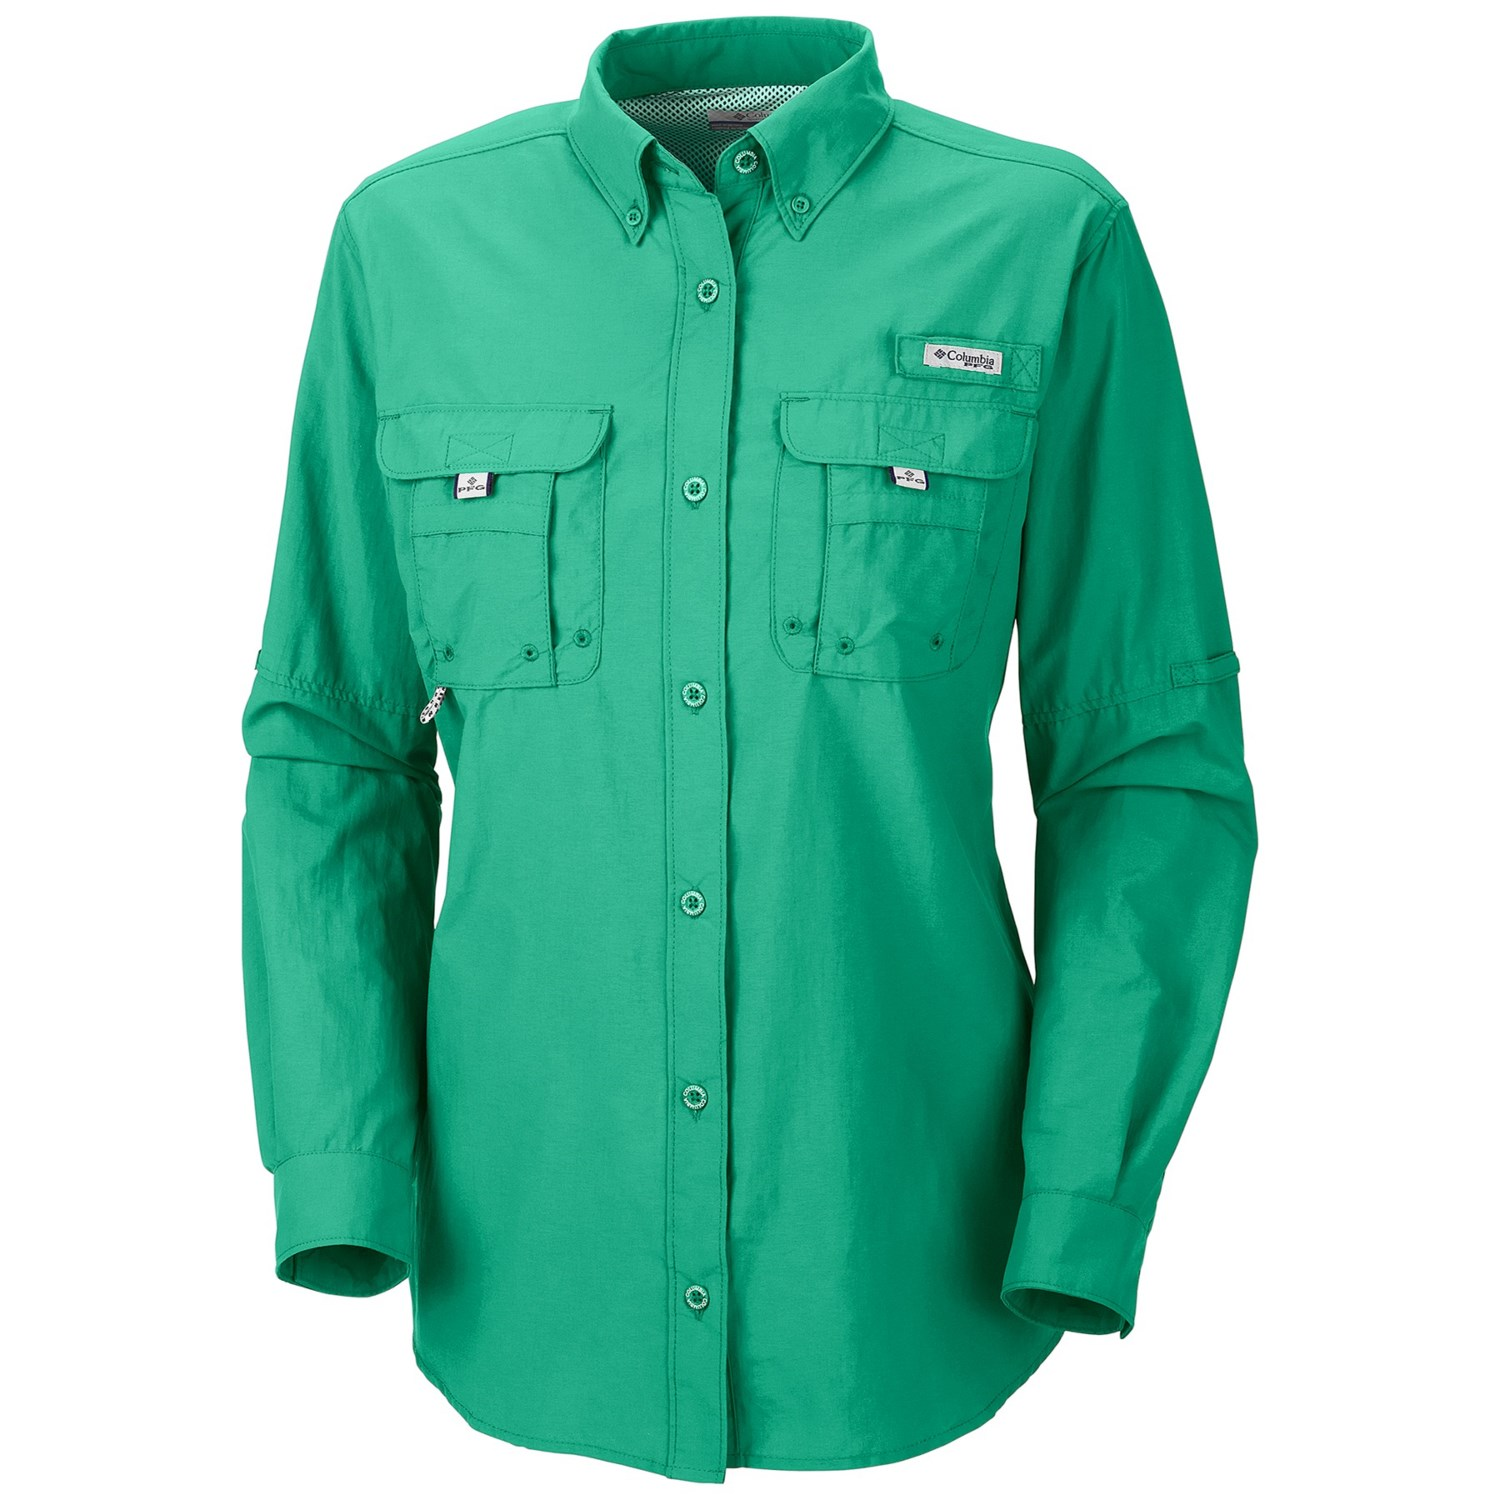 Columbia sportswear pfg bahama shirt upf 30 long sleeve for Columbia shirts womens pfg